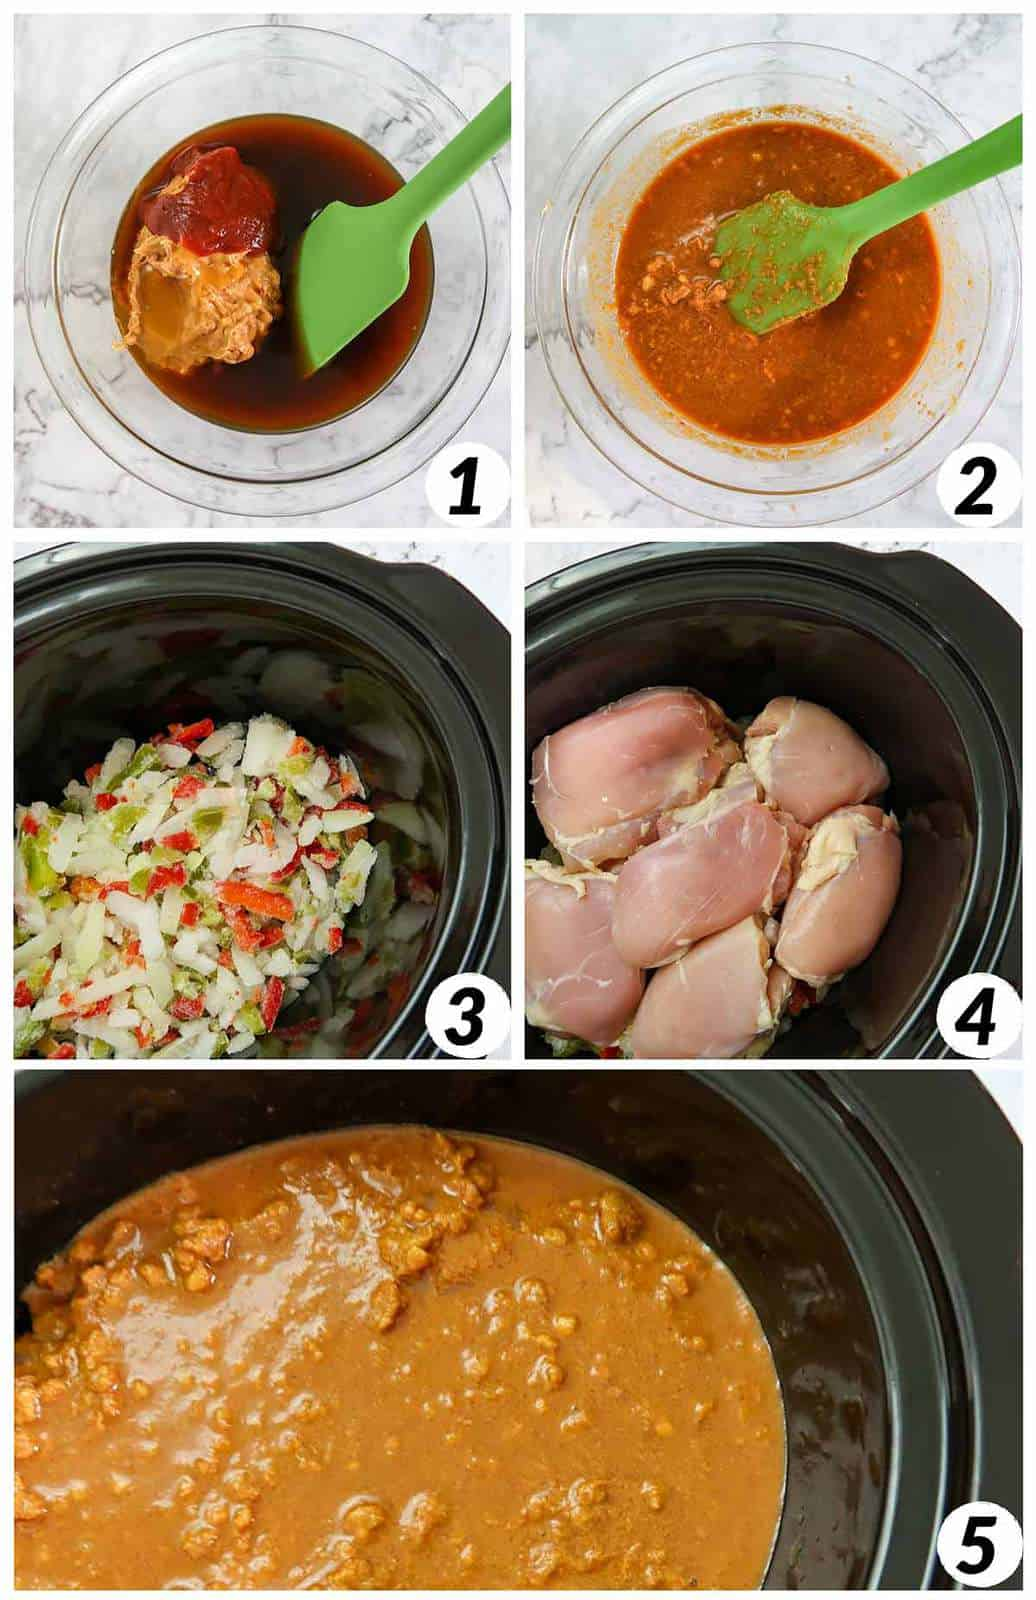 Five panel collage of process shots- mixing together ingredients to form sauce, placing chicken, veggies, and sauce in the crockpot, and cooking.